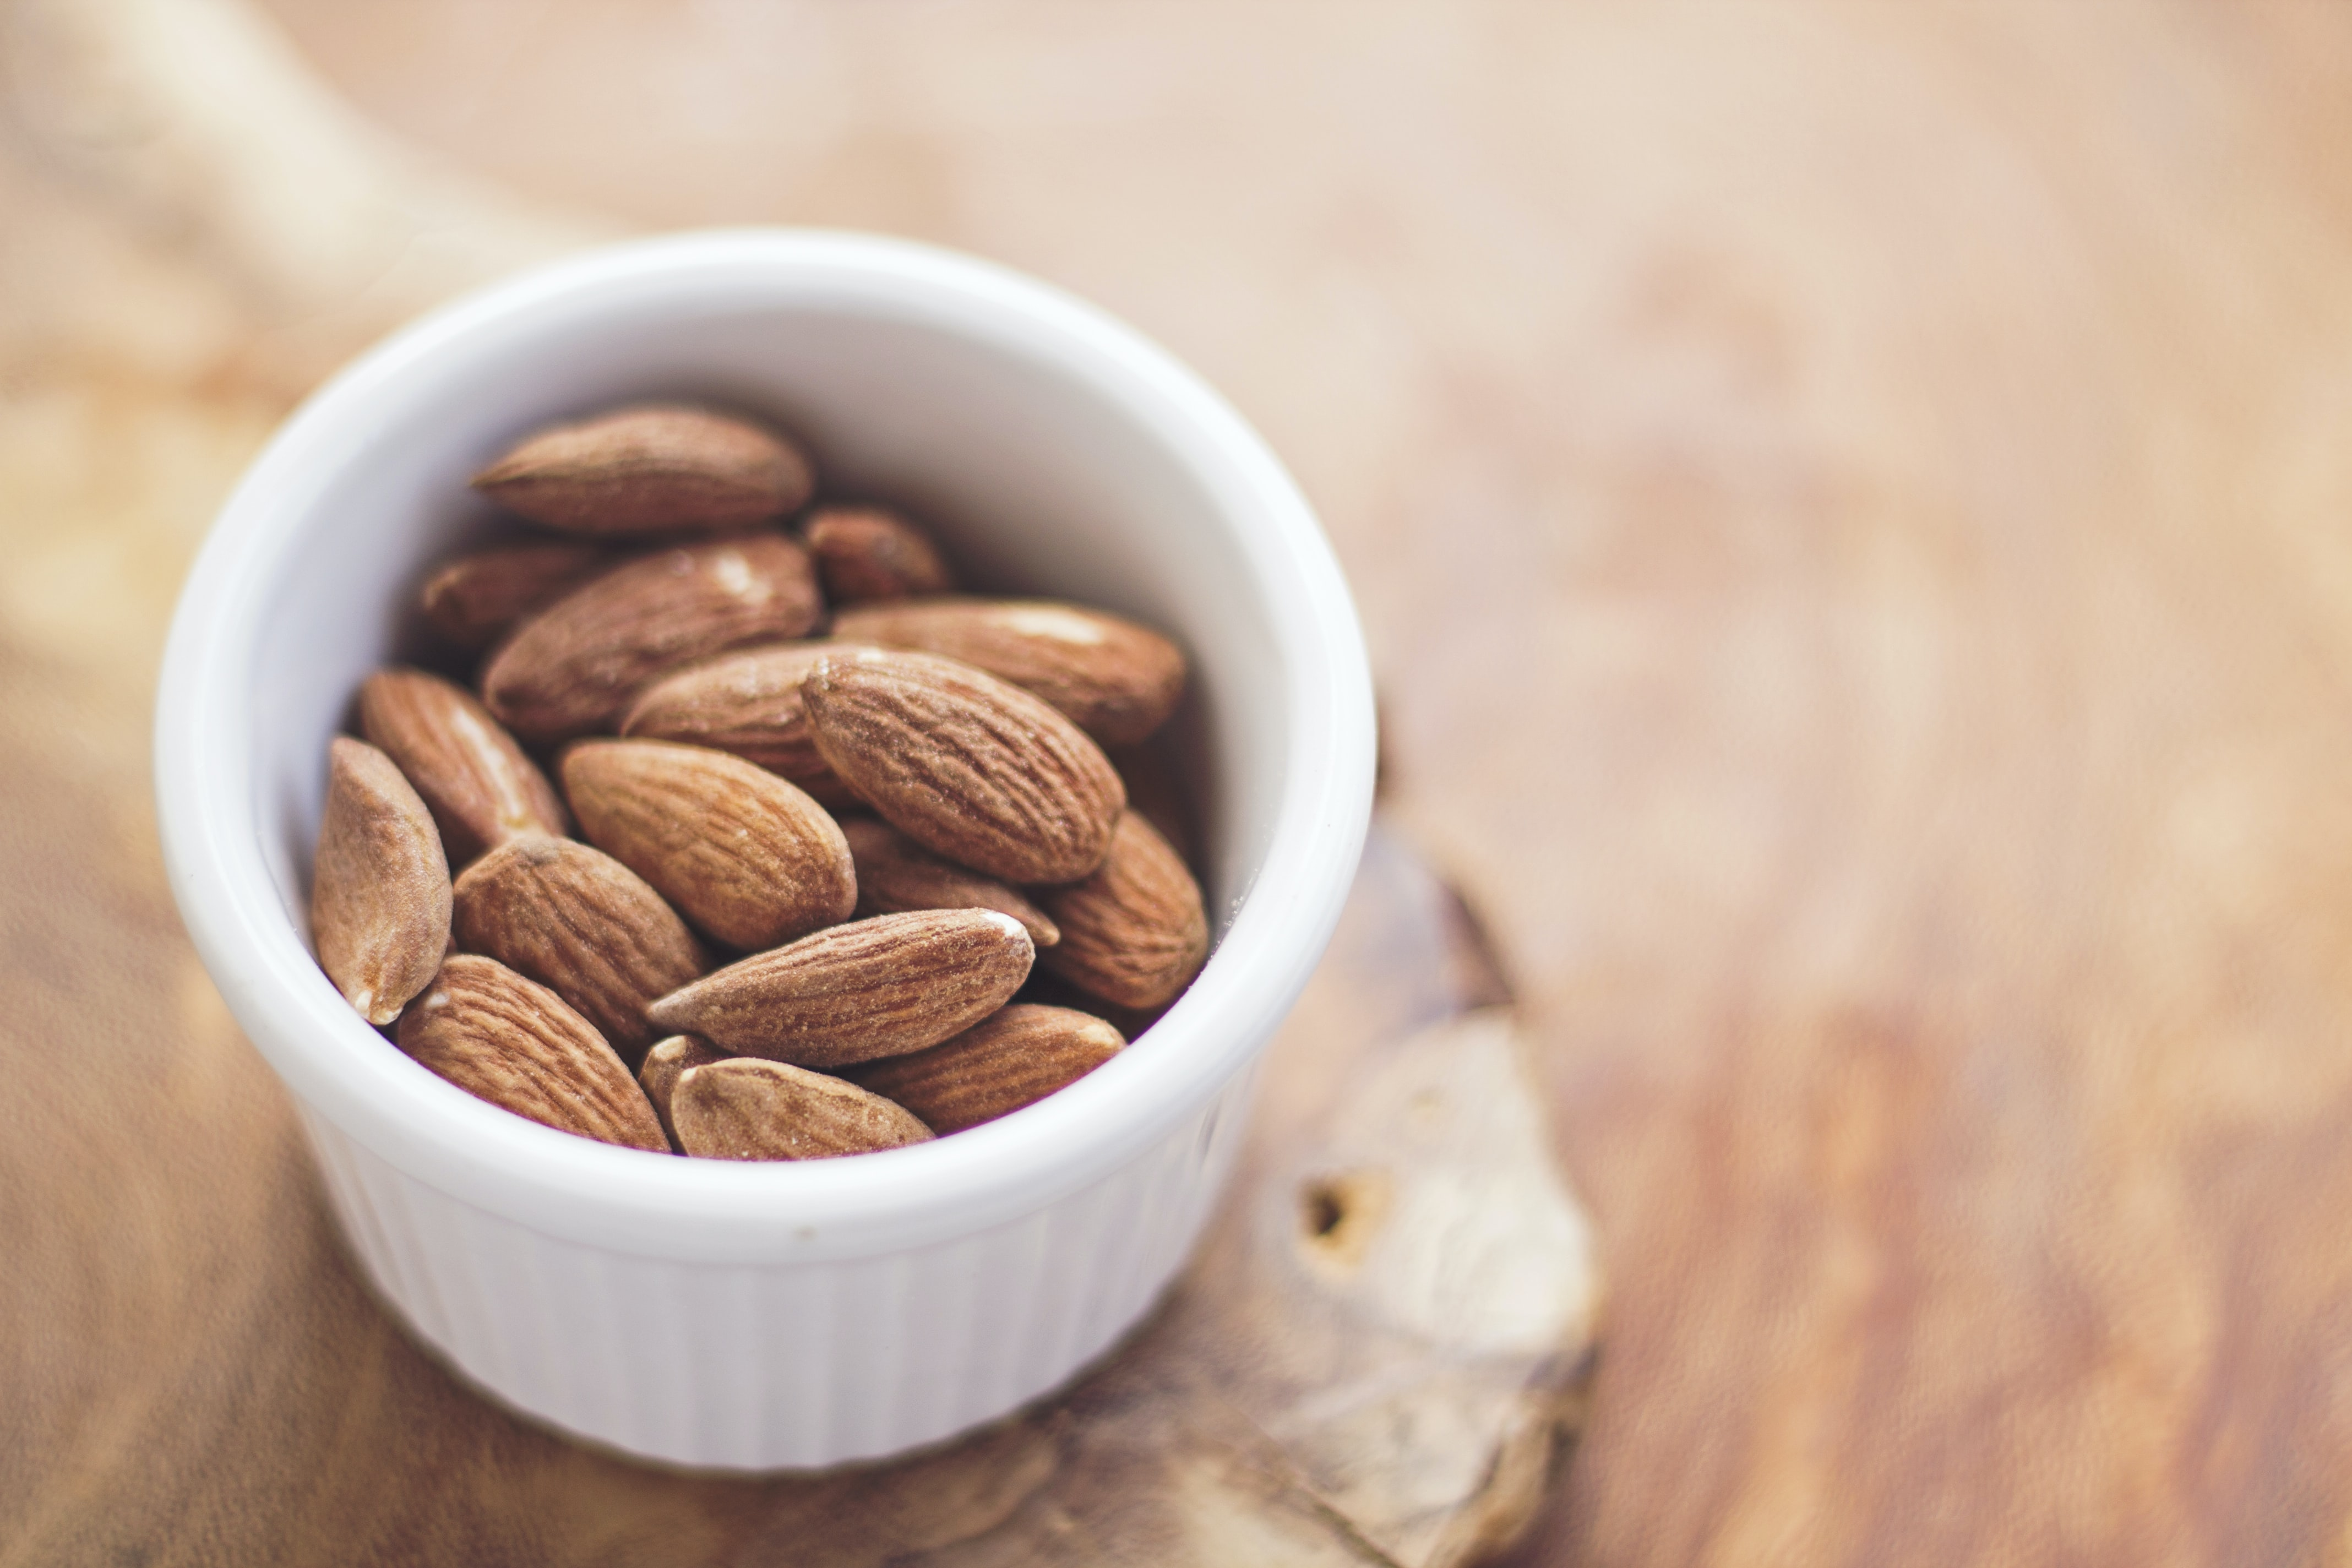 Ramekin of raw almonds for a healthy snack